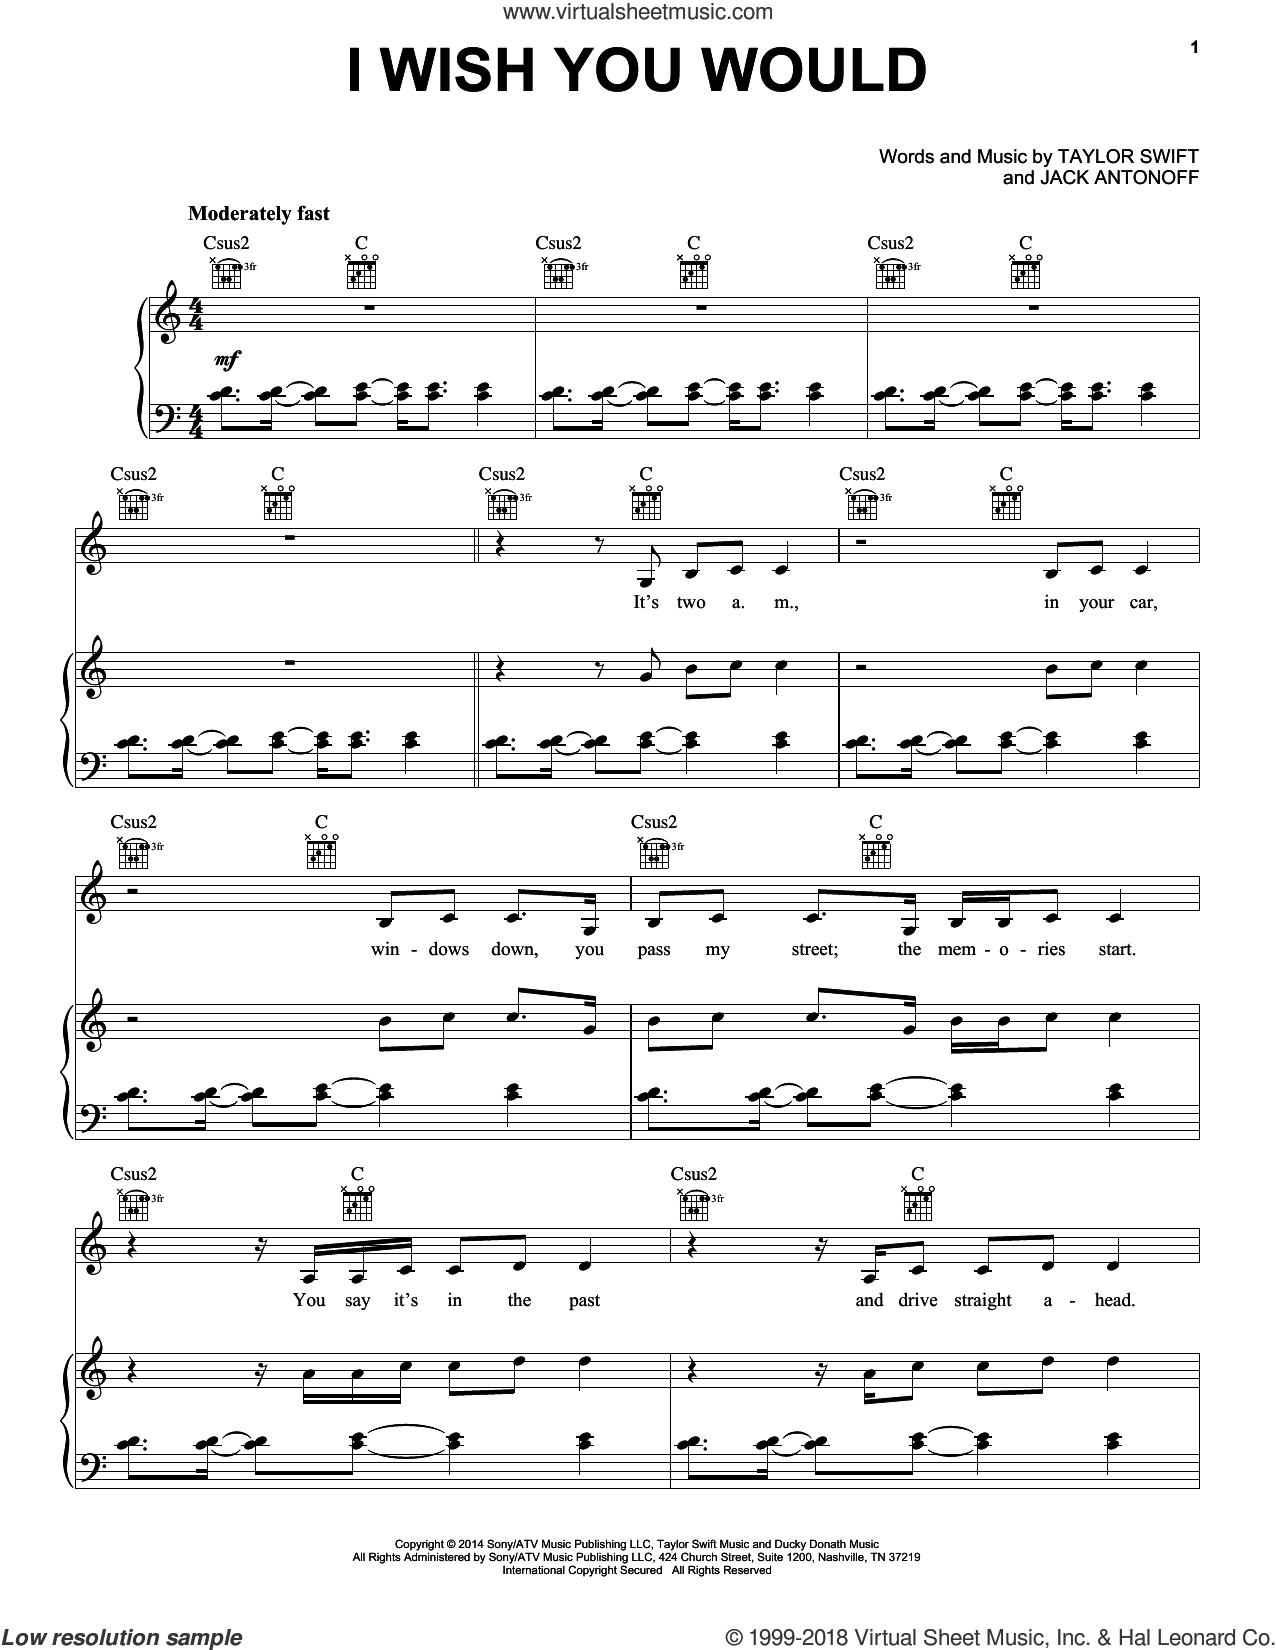 I Wish You Would sheet music for voice, piano or guitar by Taylor Swift and Jack Antonoff, intermediate. Score Image Preview.